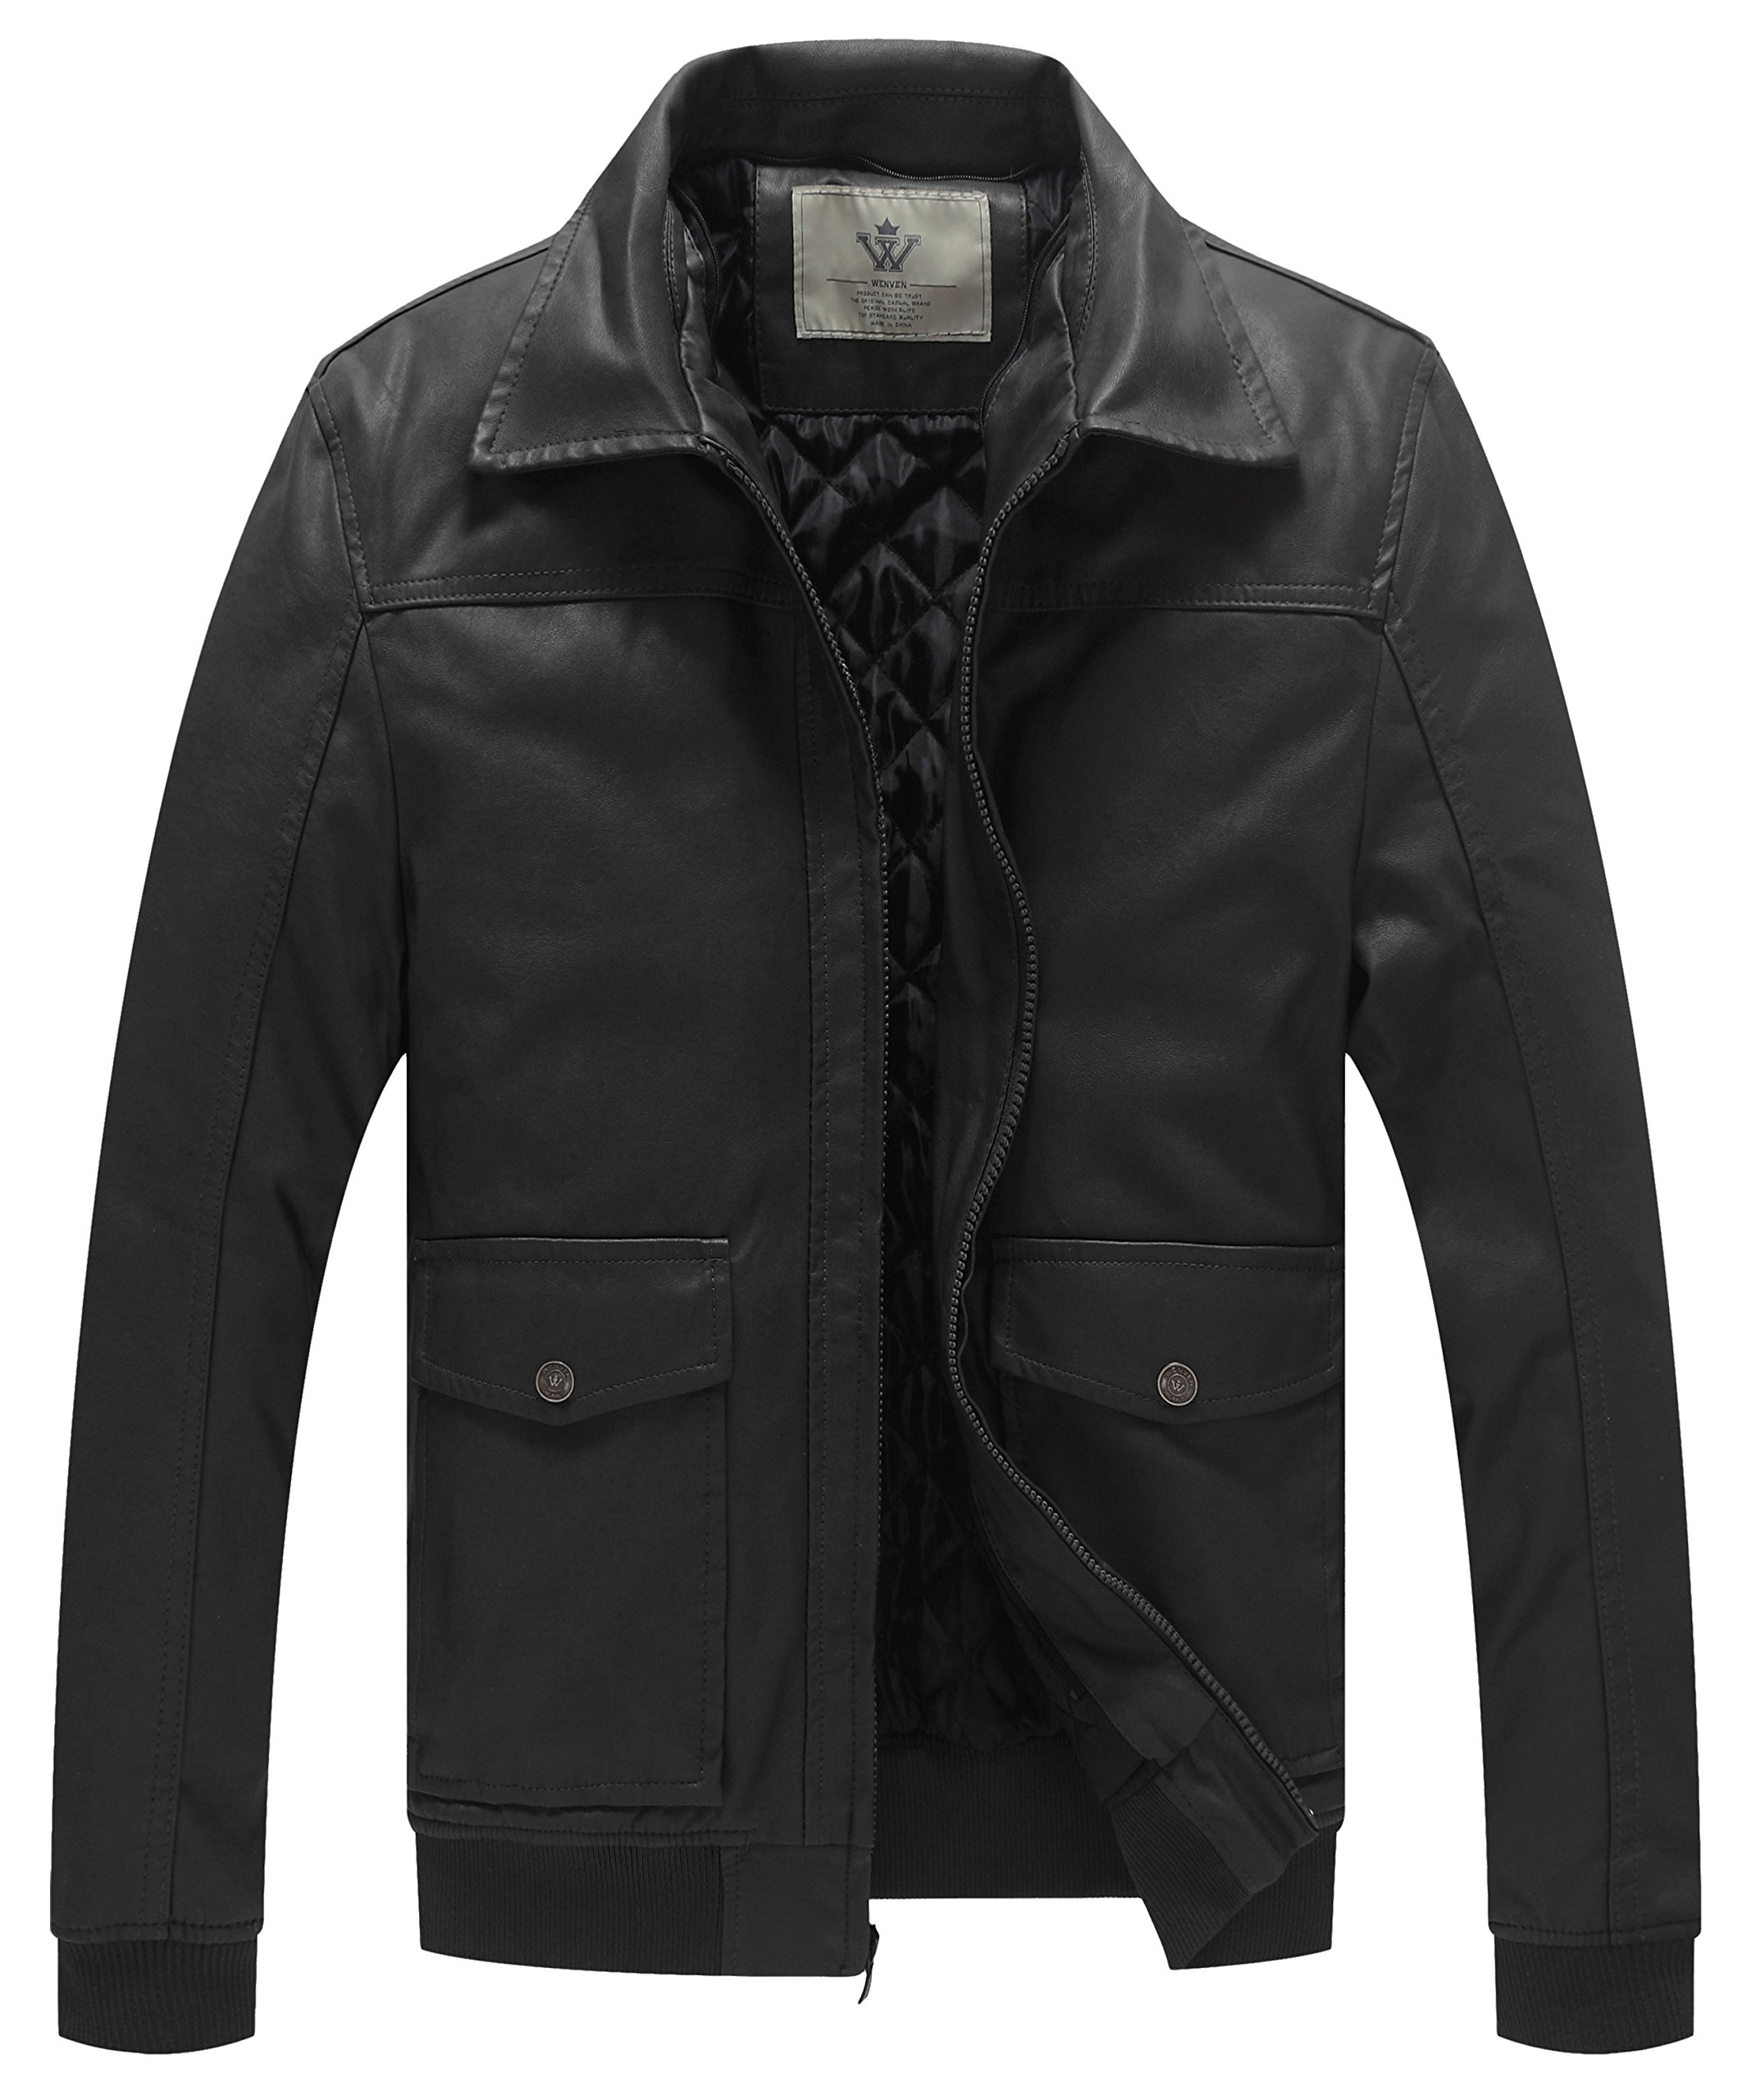 WenVen Men's Leather Jacket with Removable Hood(Black, Size XL)